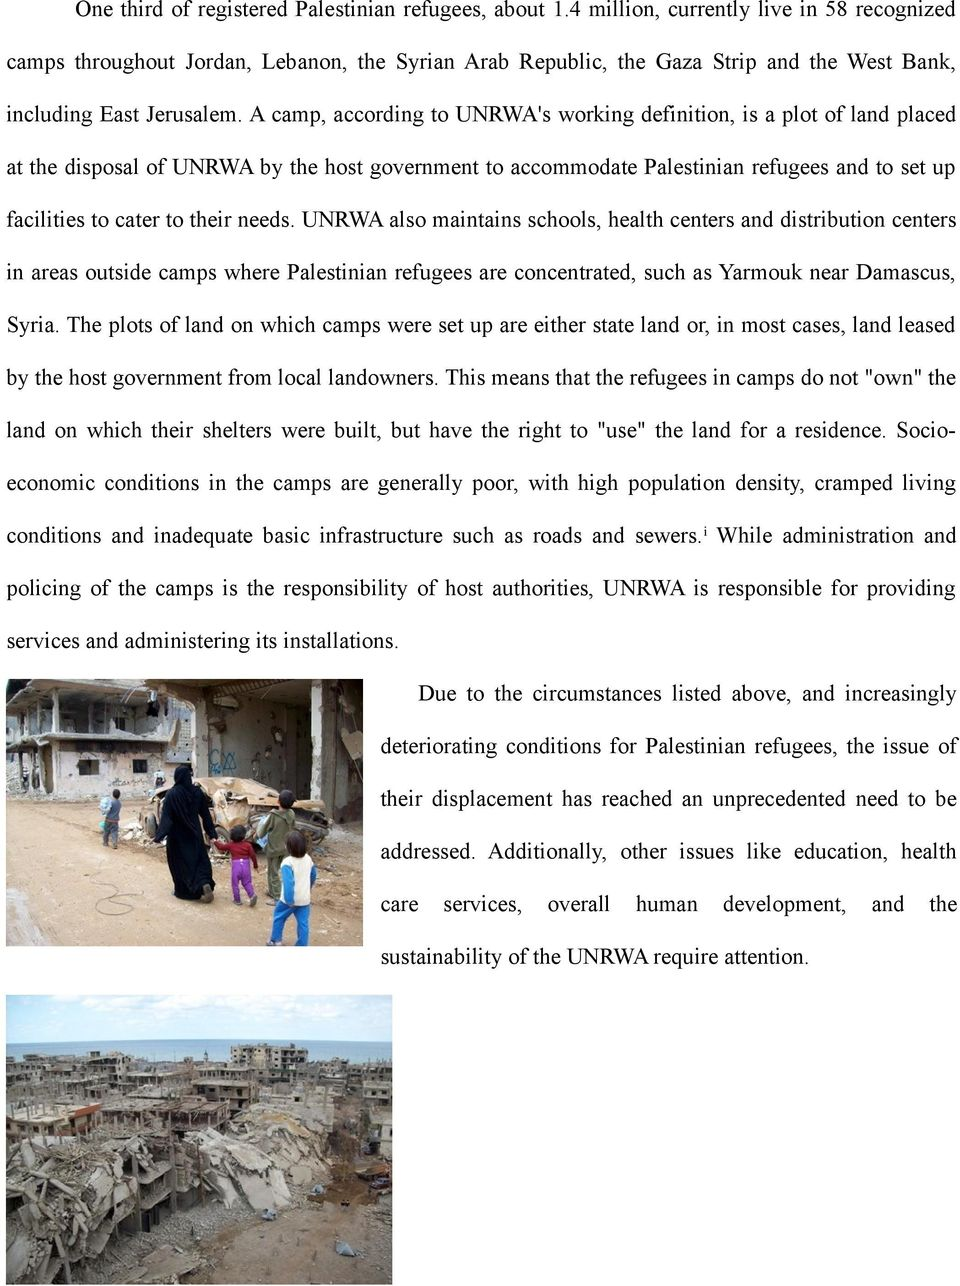 A camp, according to UNRWA's working definition, is a plot of land placed at the disposal of UNRWA by the host government to accommodate Palestinian refugees and to set up facilities to cater to